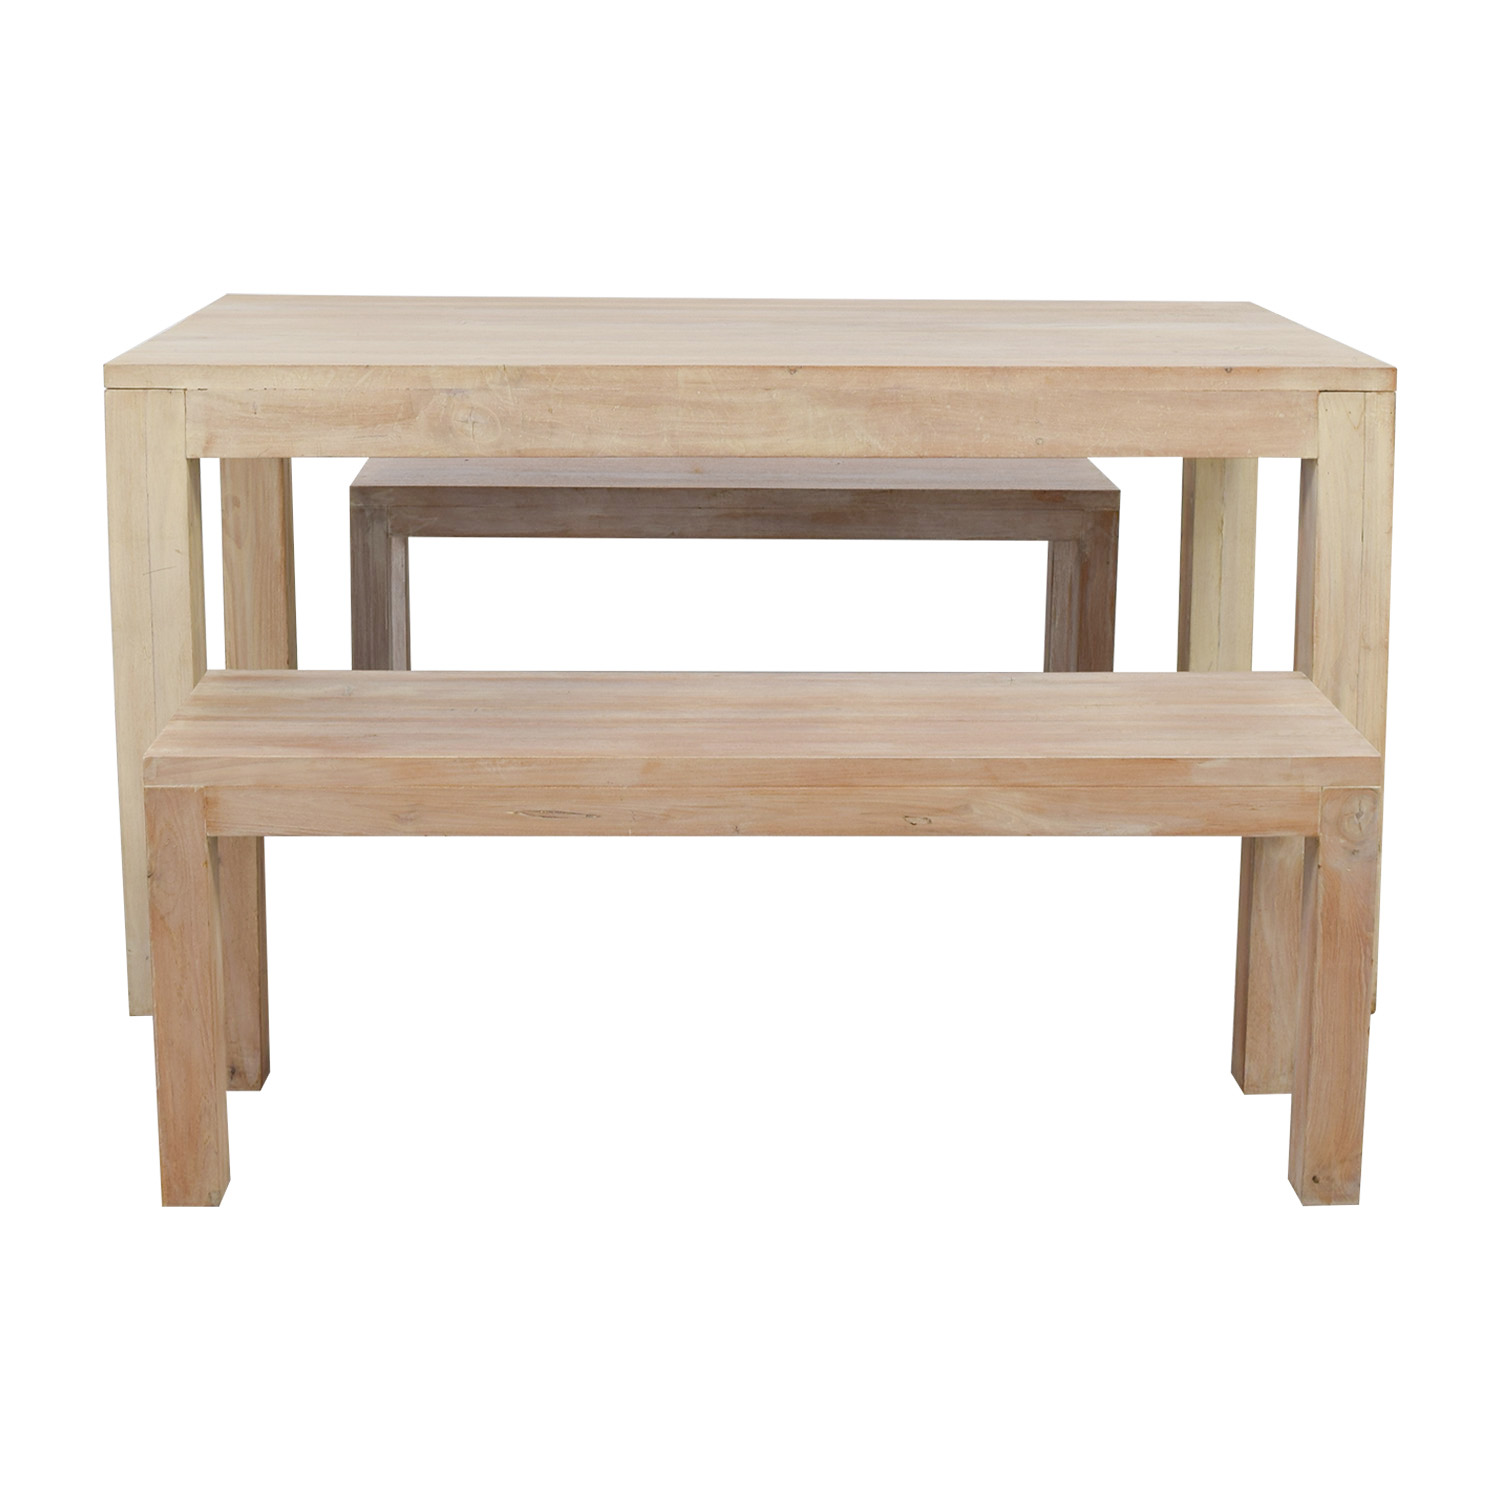 Tree hong kong tree hong kong reclaimed raw oak wood dining table with benches on sale